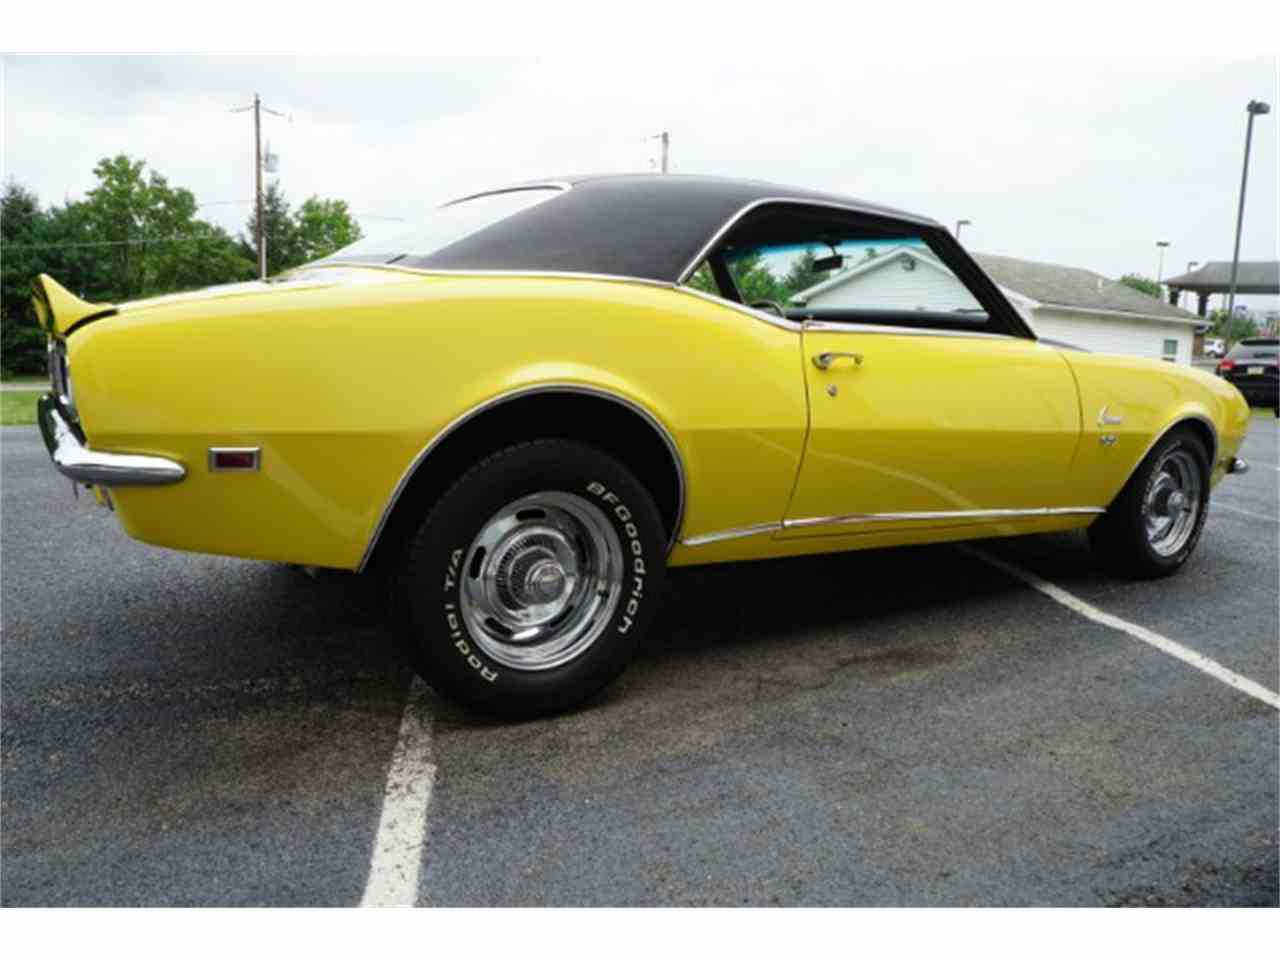 1968 Chevrolet Camaro Rs For Sale In Homer City Pa 124378n305343 Tic Toc Tach Wiring Diagram Prev